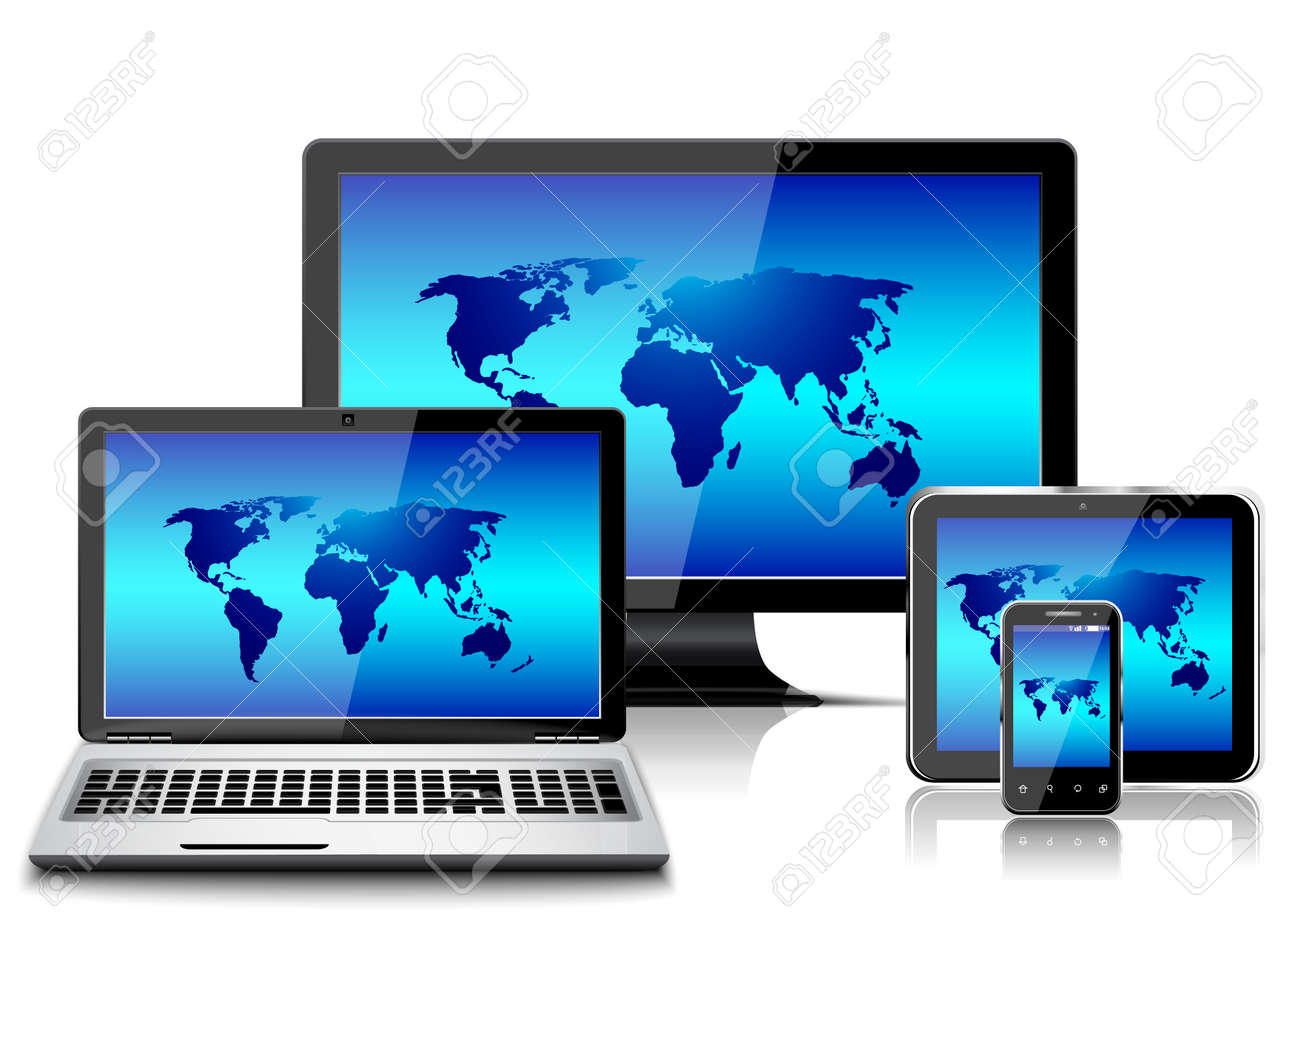 Computer monitor, laptop, tablet pc, and mobile smartphone with world map isolated - 166513080